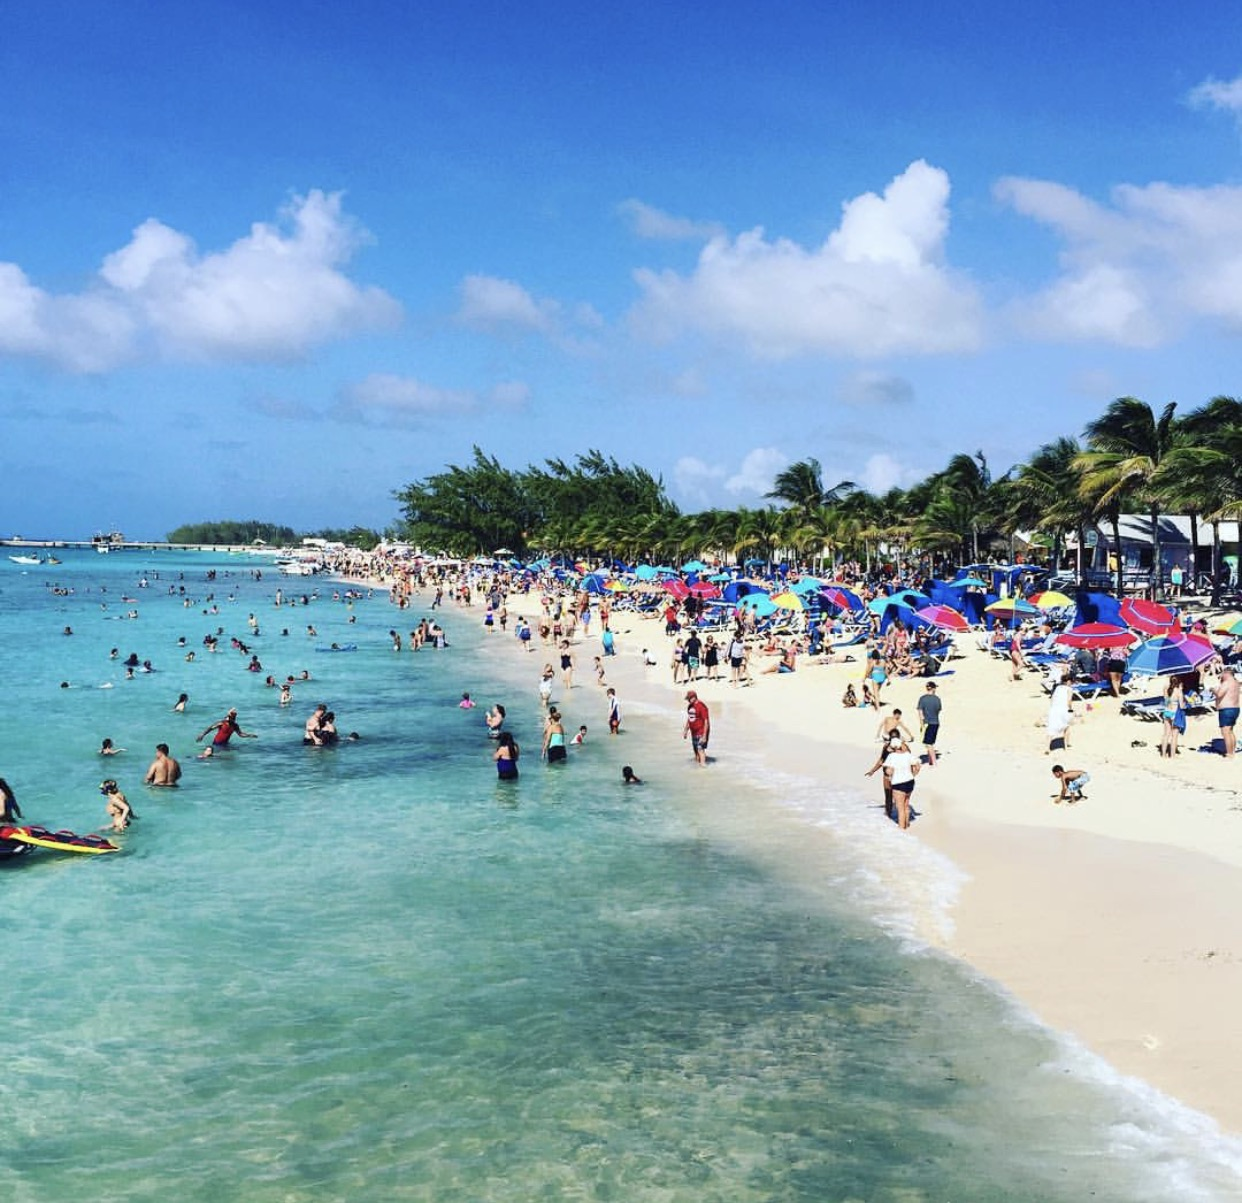 The beach in Grand Turk, another location that inspires Bethany | Spoonflower Blog